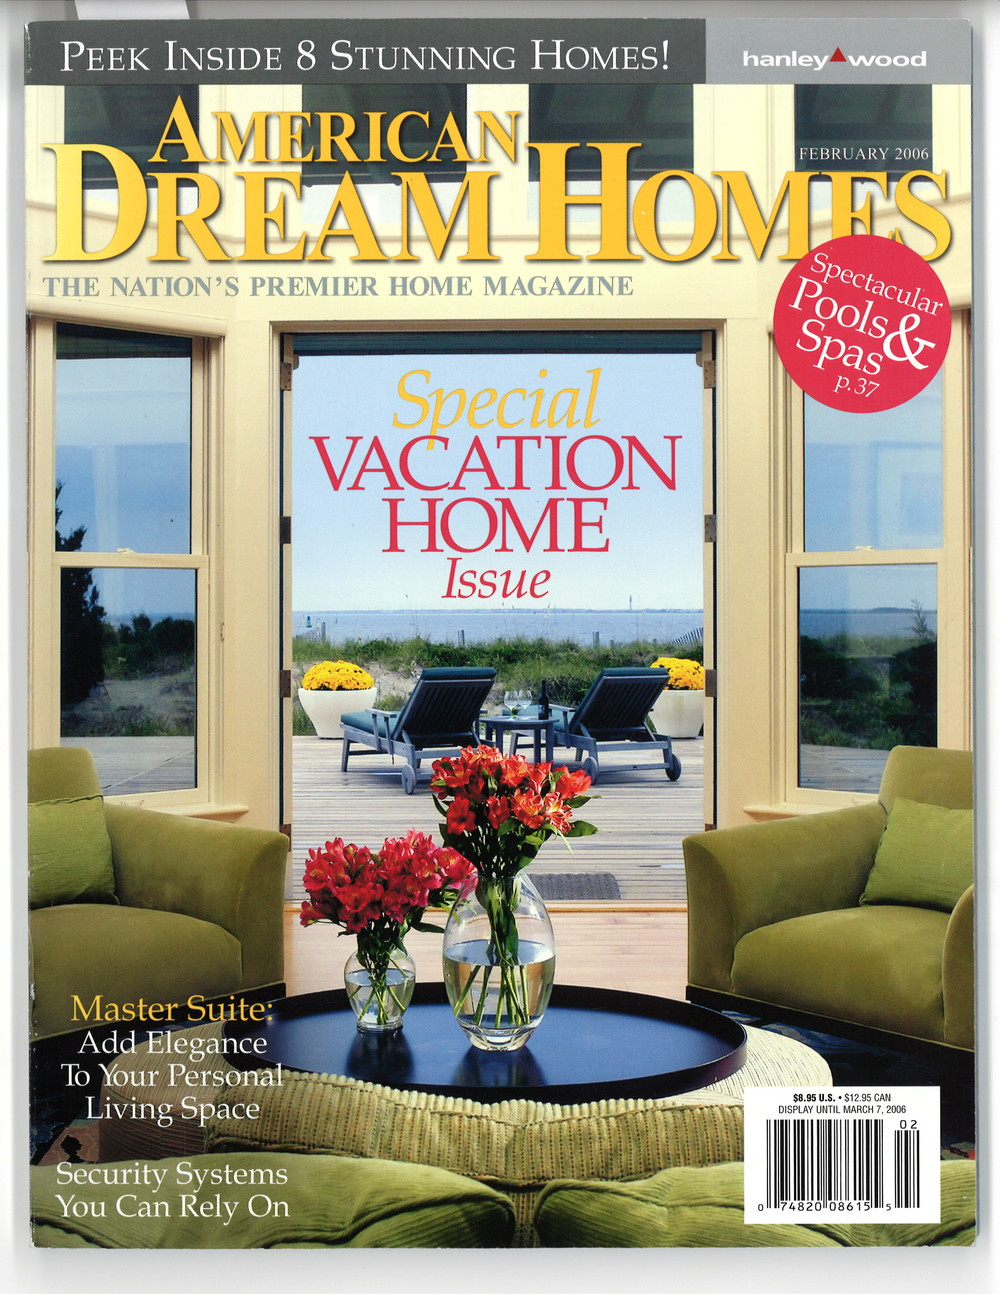 American Dream Homes - February 2006